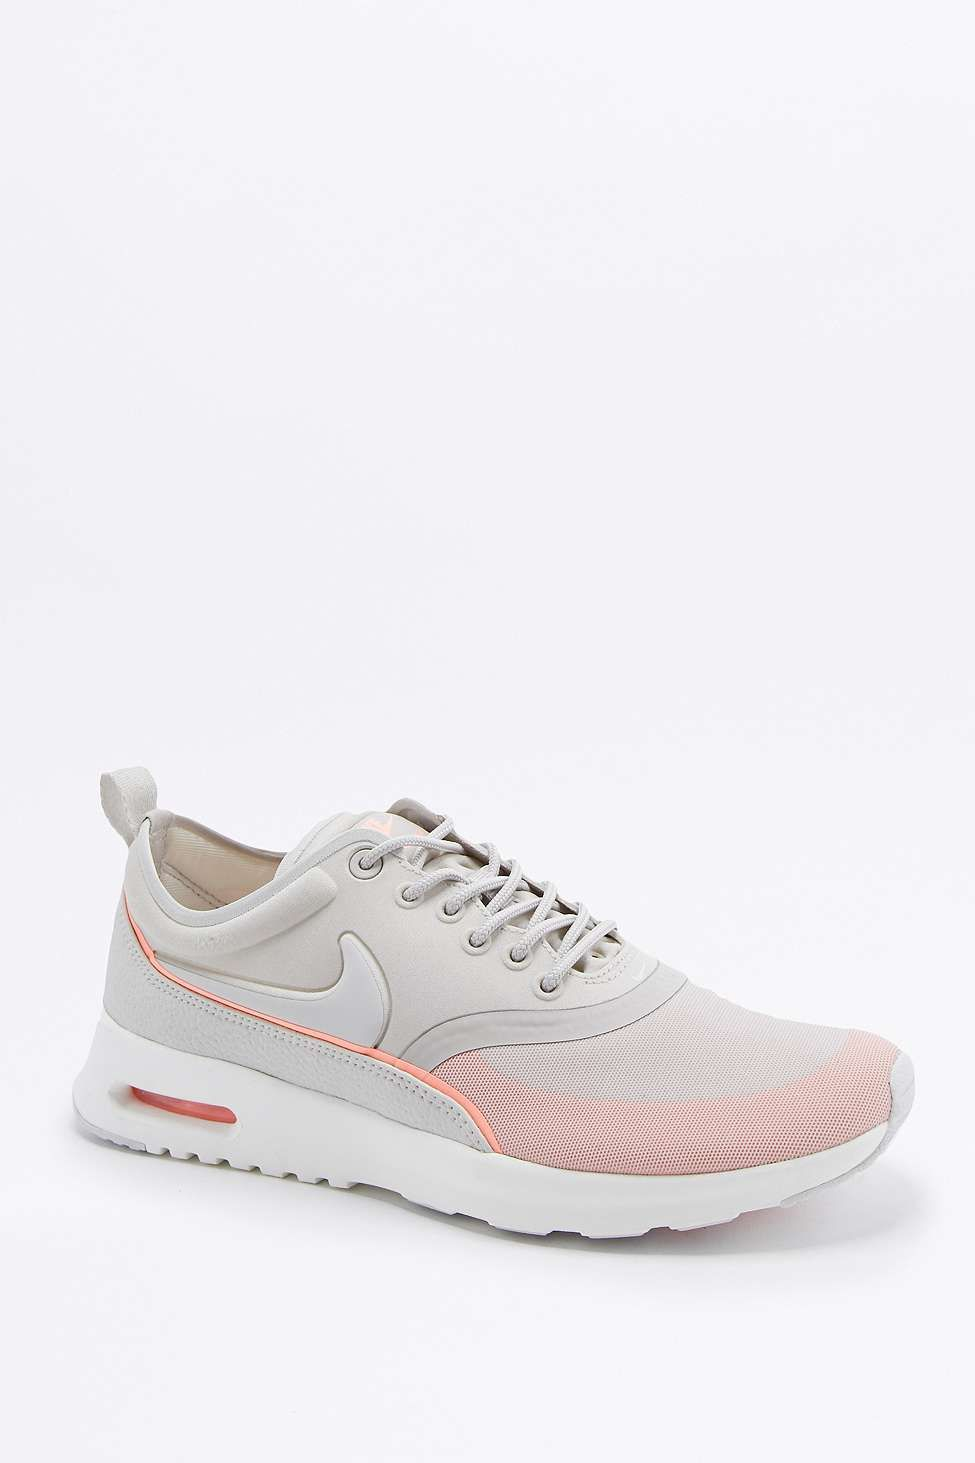 sweden nike air max thea grey and orange 482cd d4dff